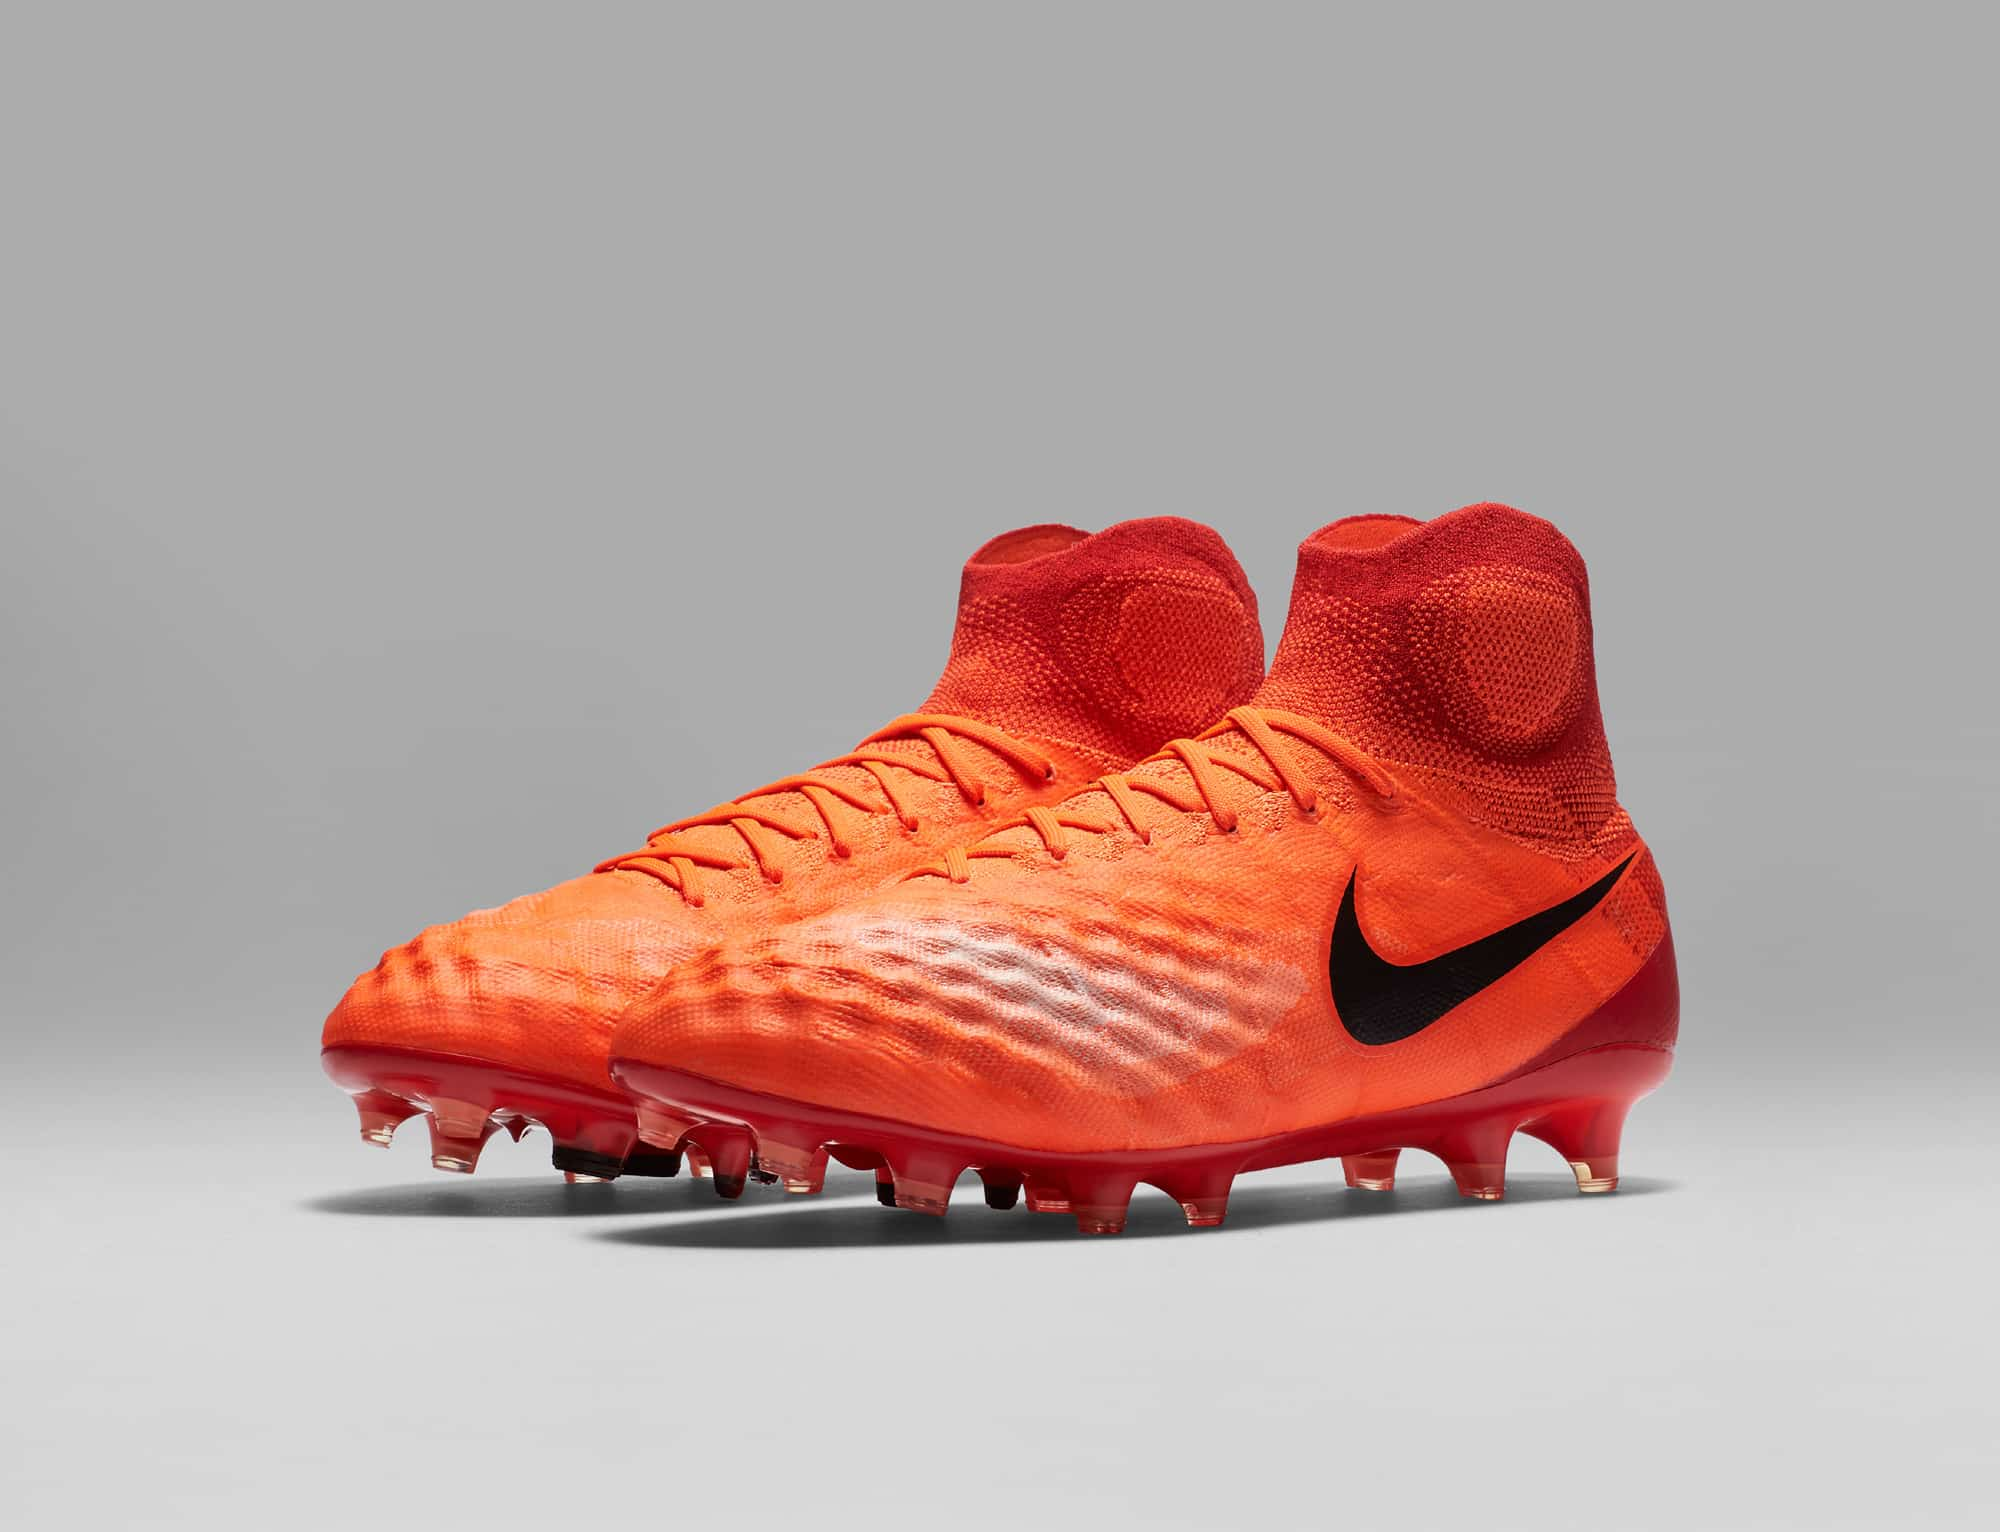 chaussures-football-Nike-Magista-Obra-2-Men-Radiation-Flare-img3